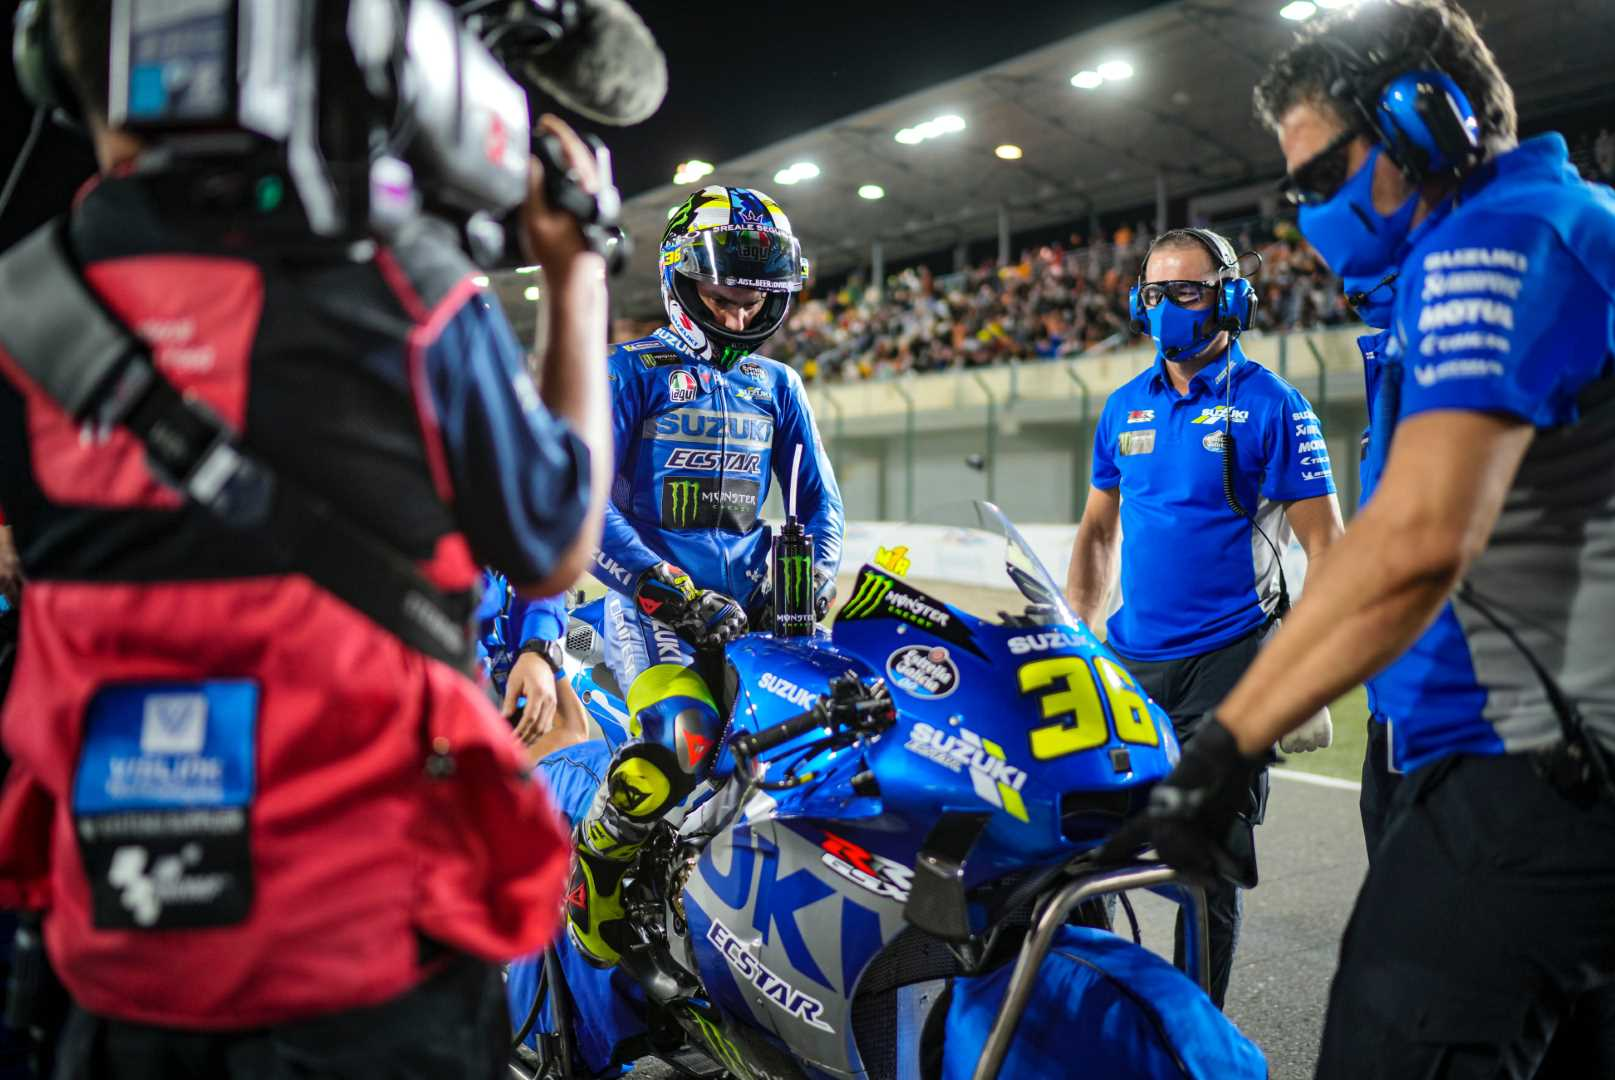 Fourth place fin and current MotoGP champ Joan Mir - Photo Suzuki Racing